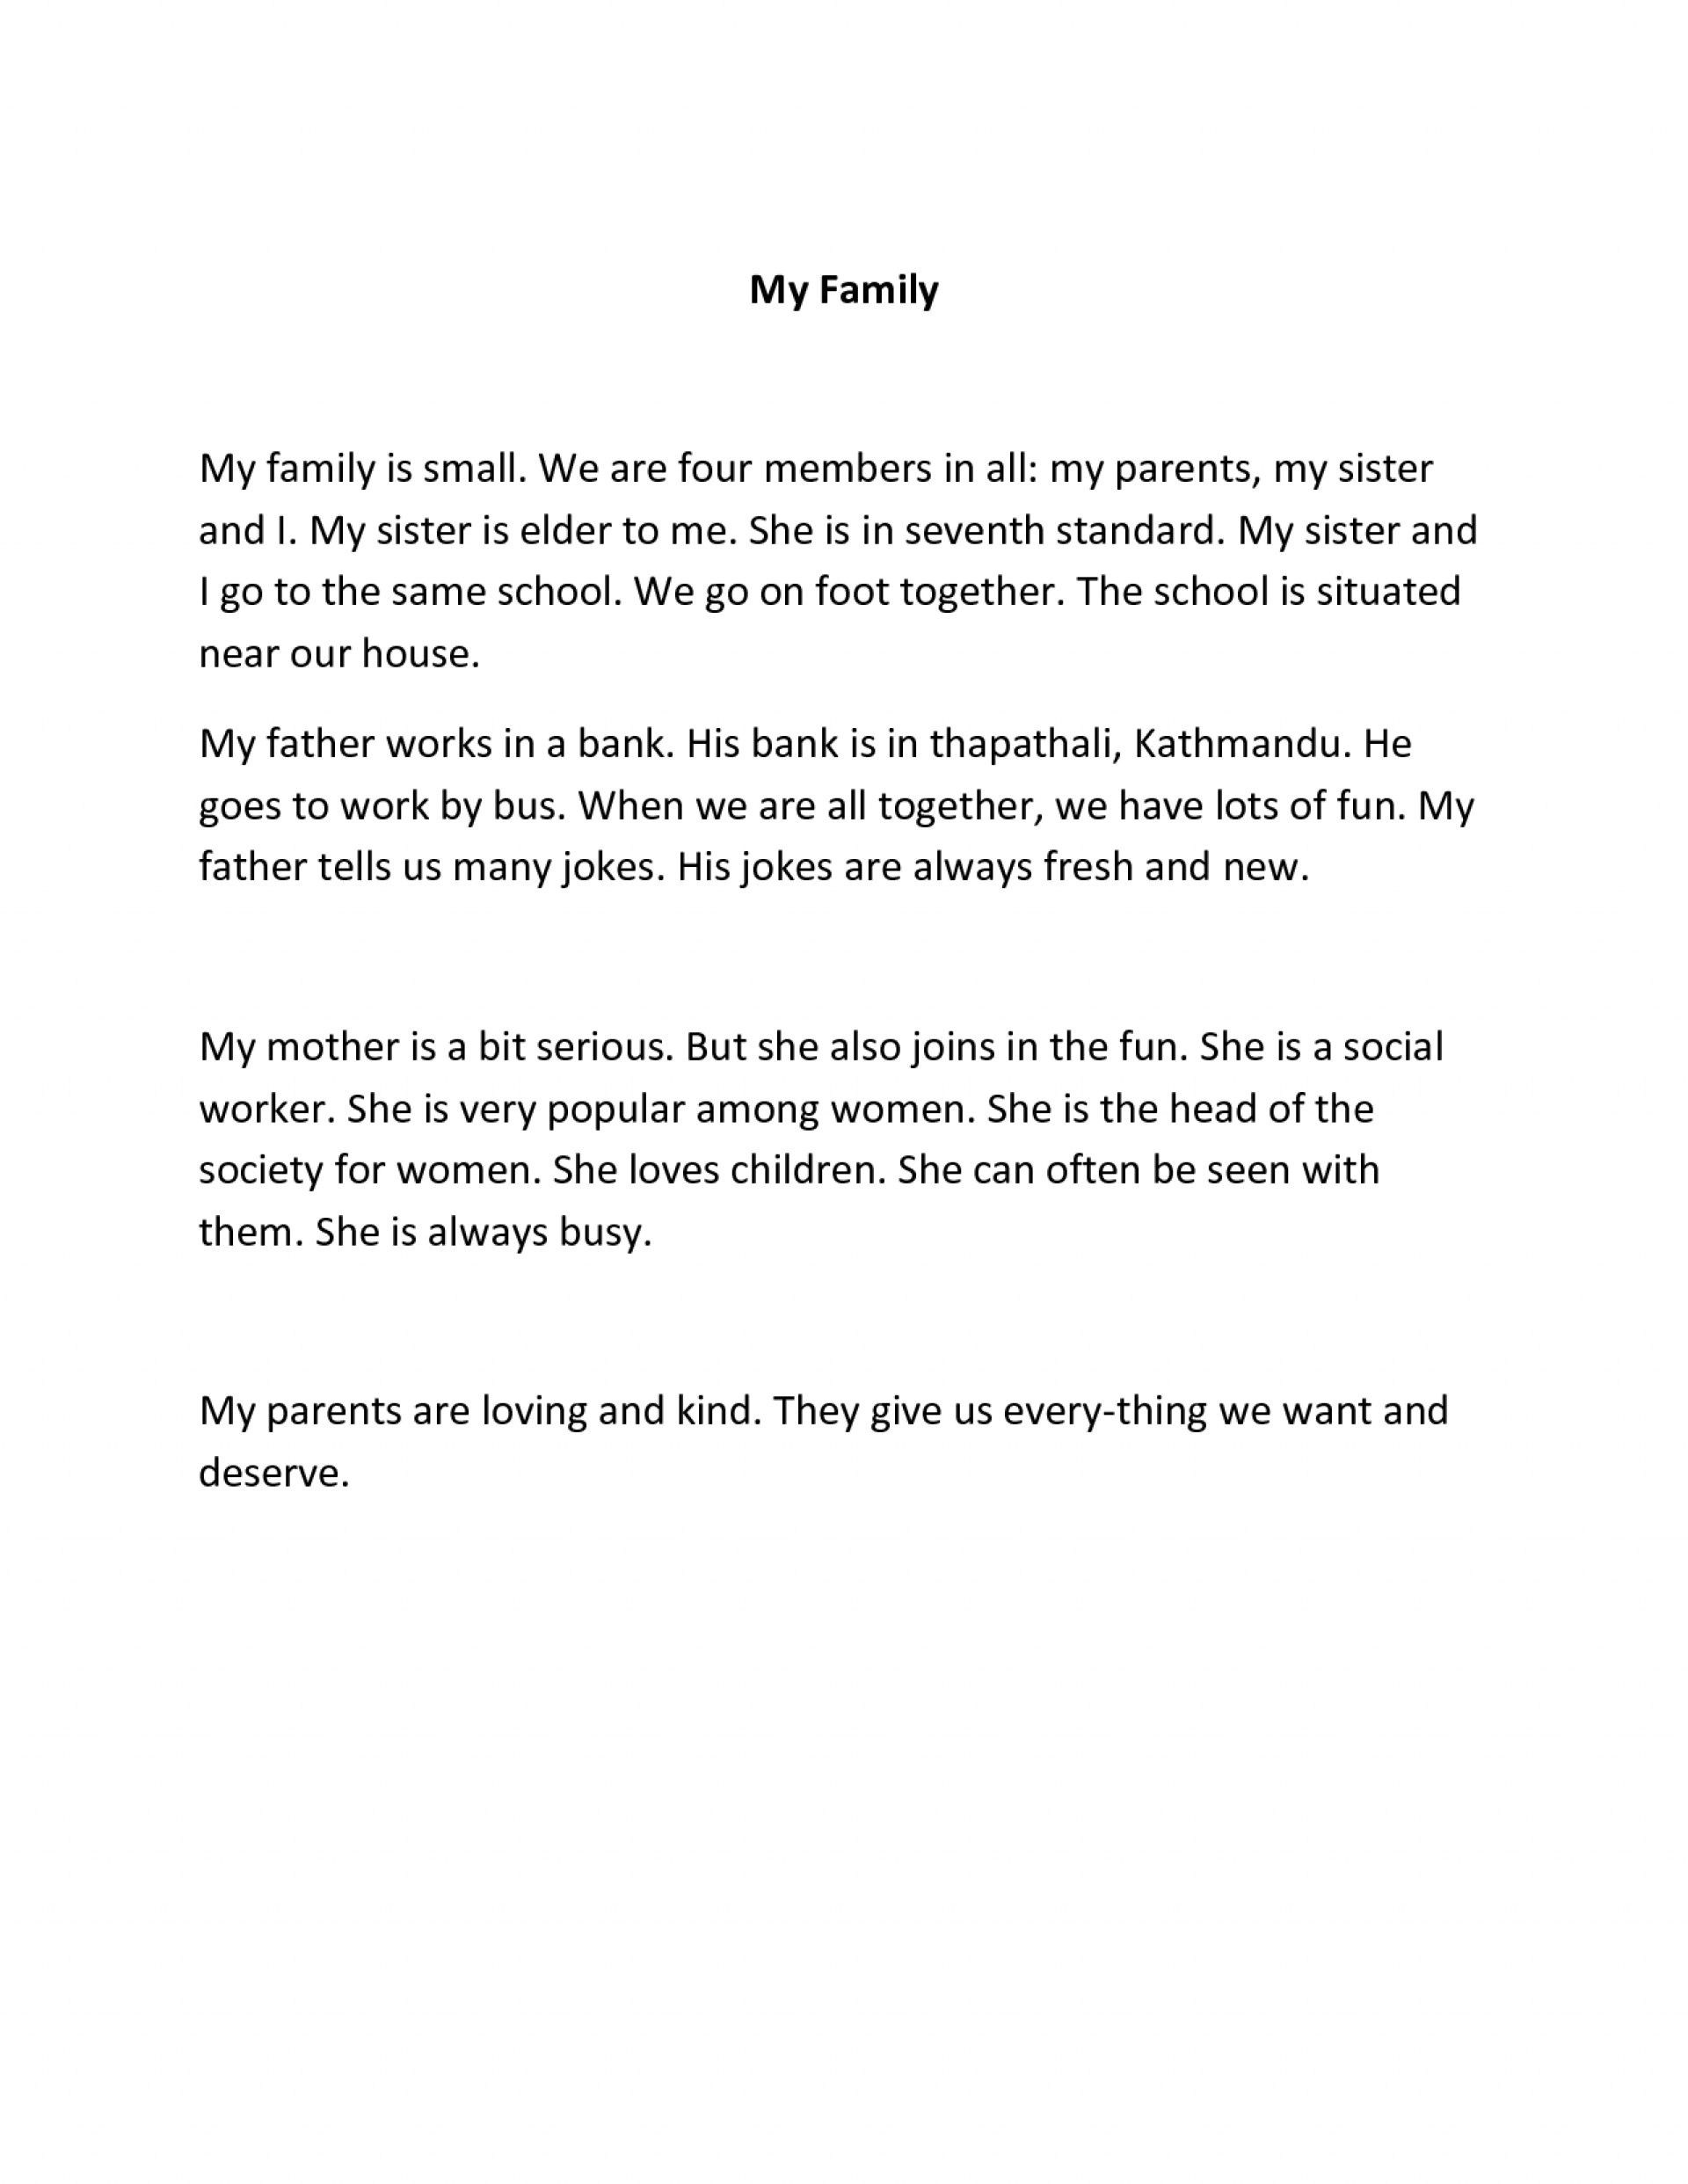 009 Family Essays Short Essay English My Example For Kindergarten On Class In German I Love About Is Always Supportive Hindi French Pet Student Impressive Examples Primary School Narrative To Read Small Spanish 1920